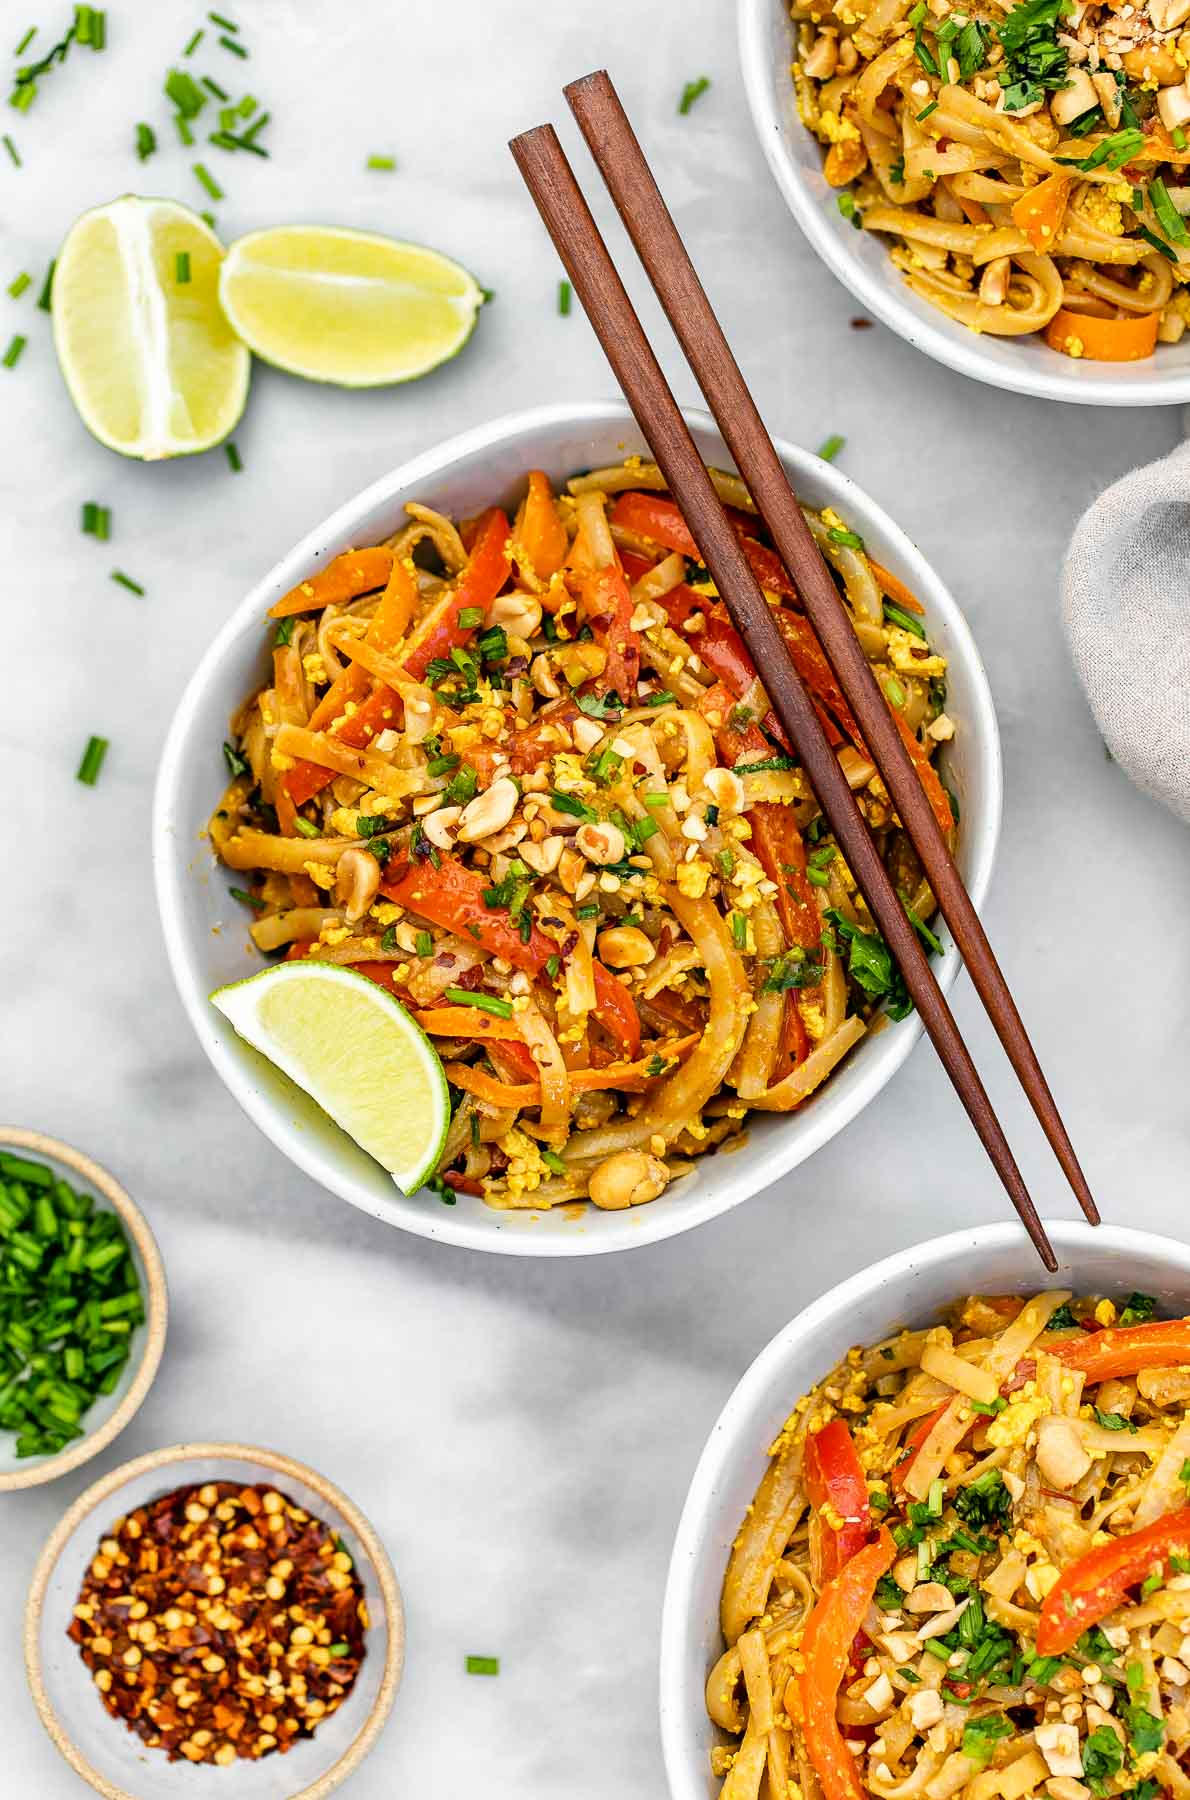 Vegan pad thai in three bowls with chopsticks on top.